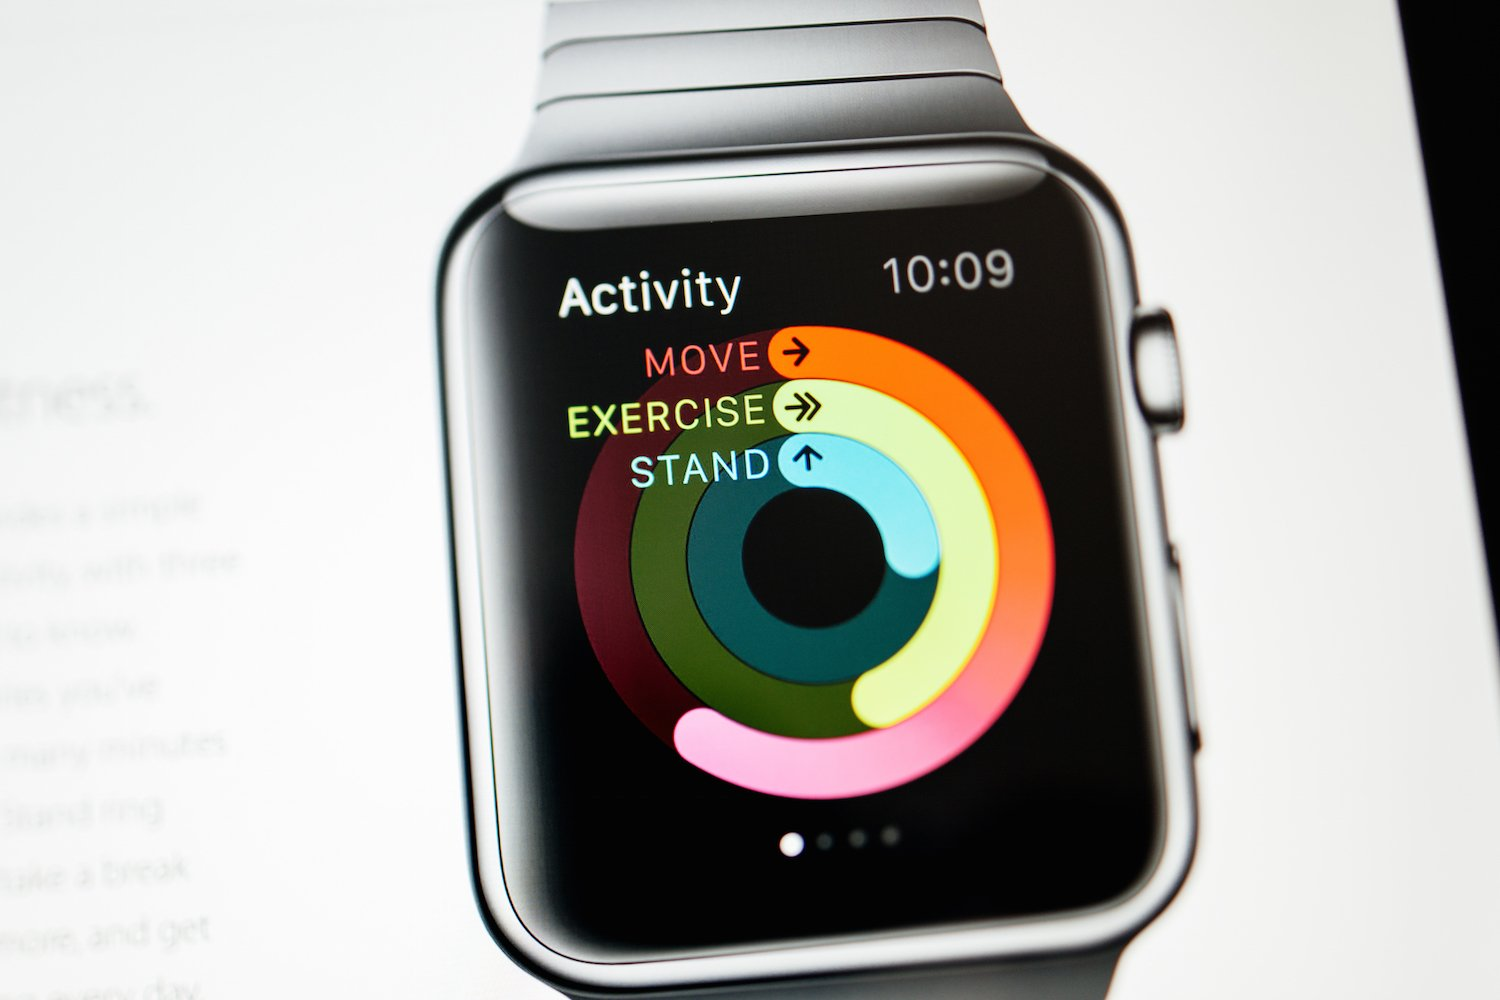 Apple is offering developers expedited Apple Watch deliveries through a lottery system